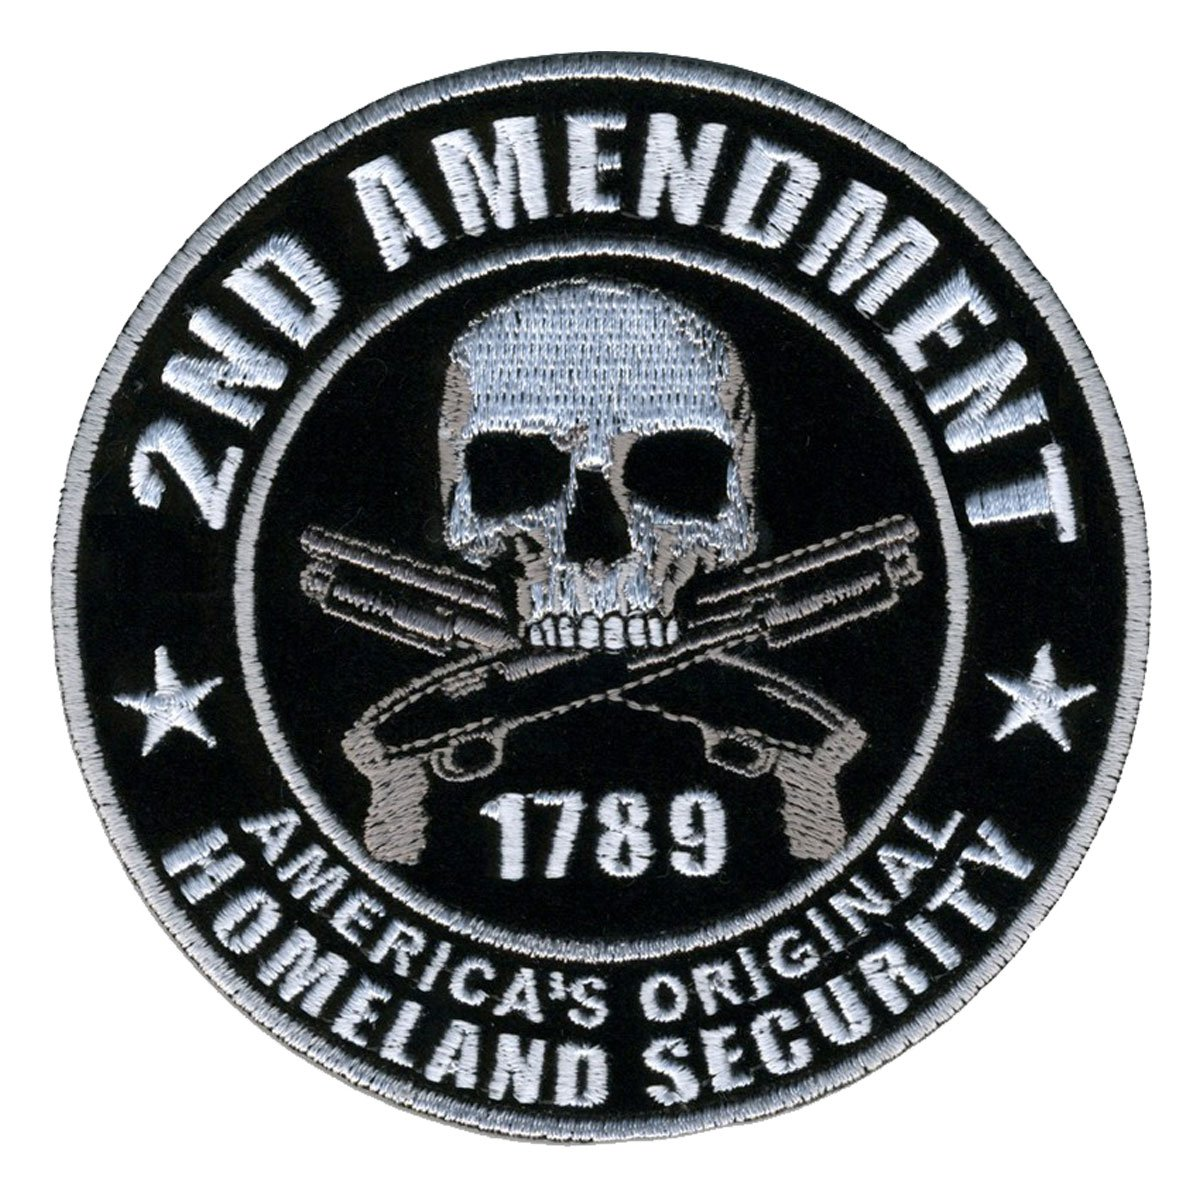 Amazon hot leathers ppa5950 homeland security 2nd amendment amazon hot leathers ppa5950 homeland security 2nd amendment support patch 4 width x 4 height automotive buycottarizona